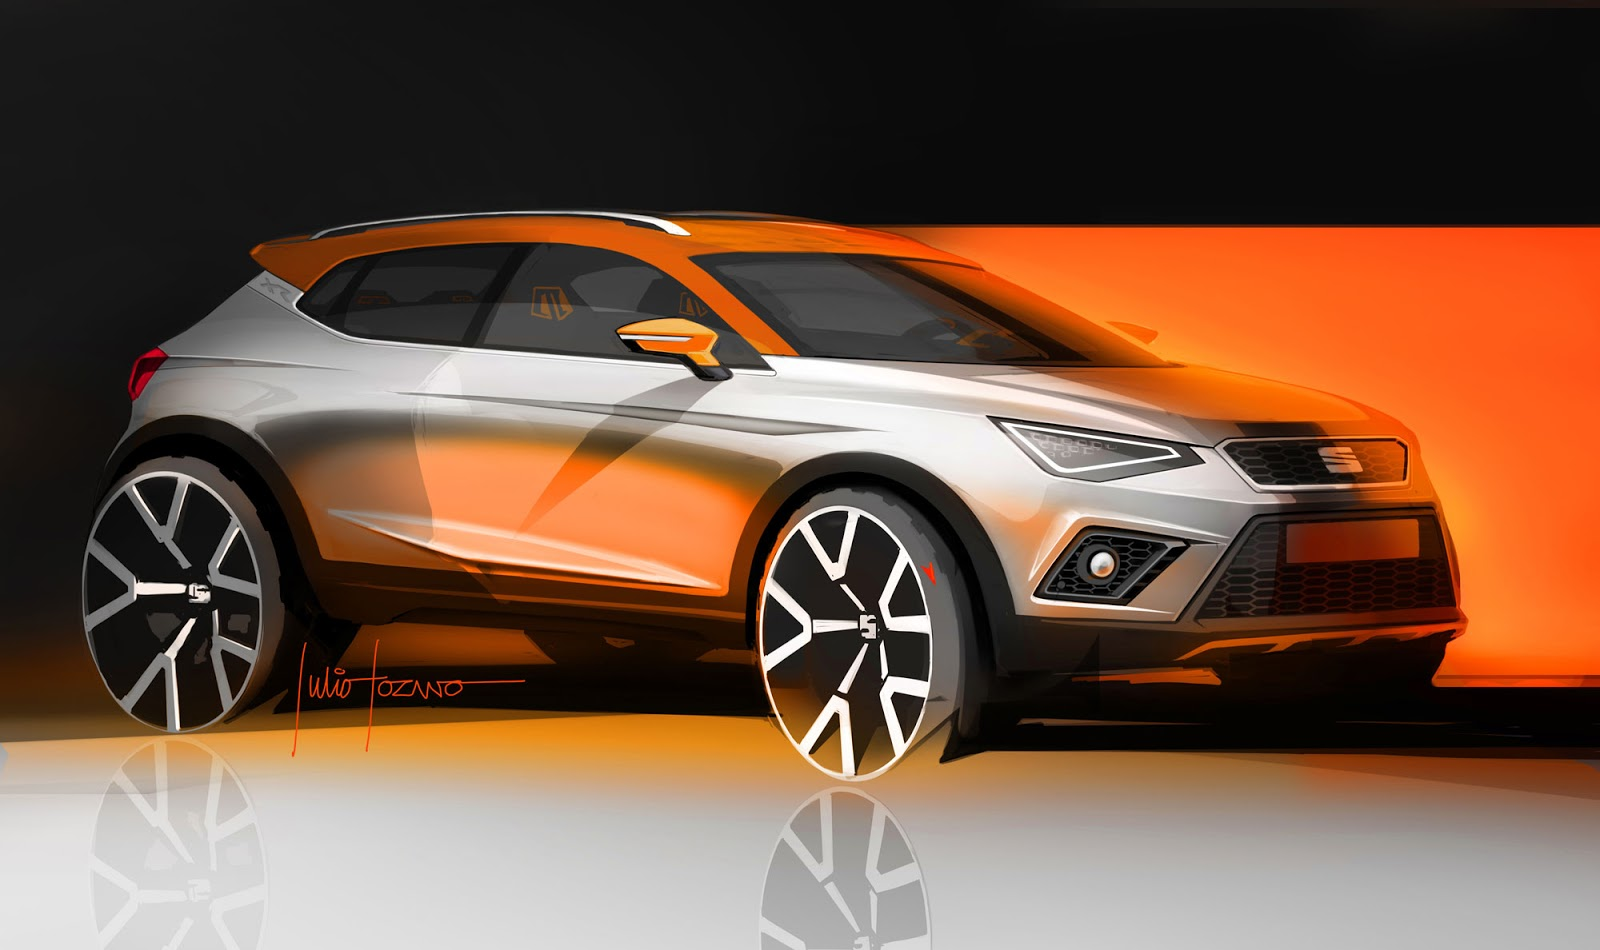 Seat Arona sketch by Julio Lozano, front side view